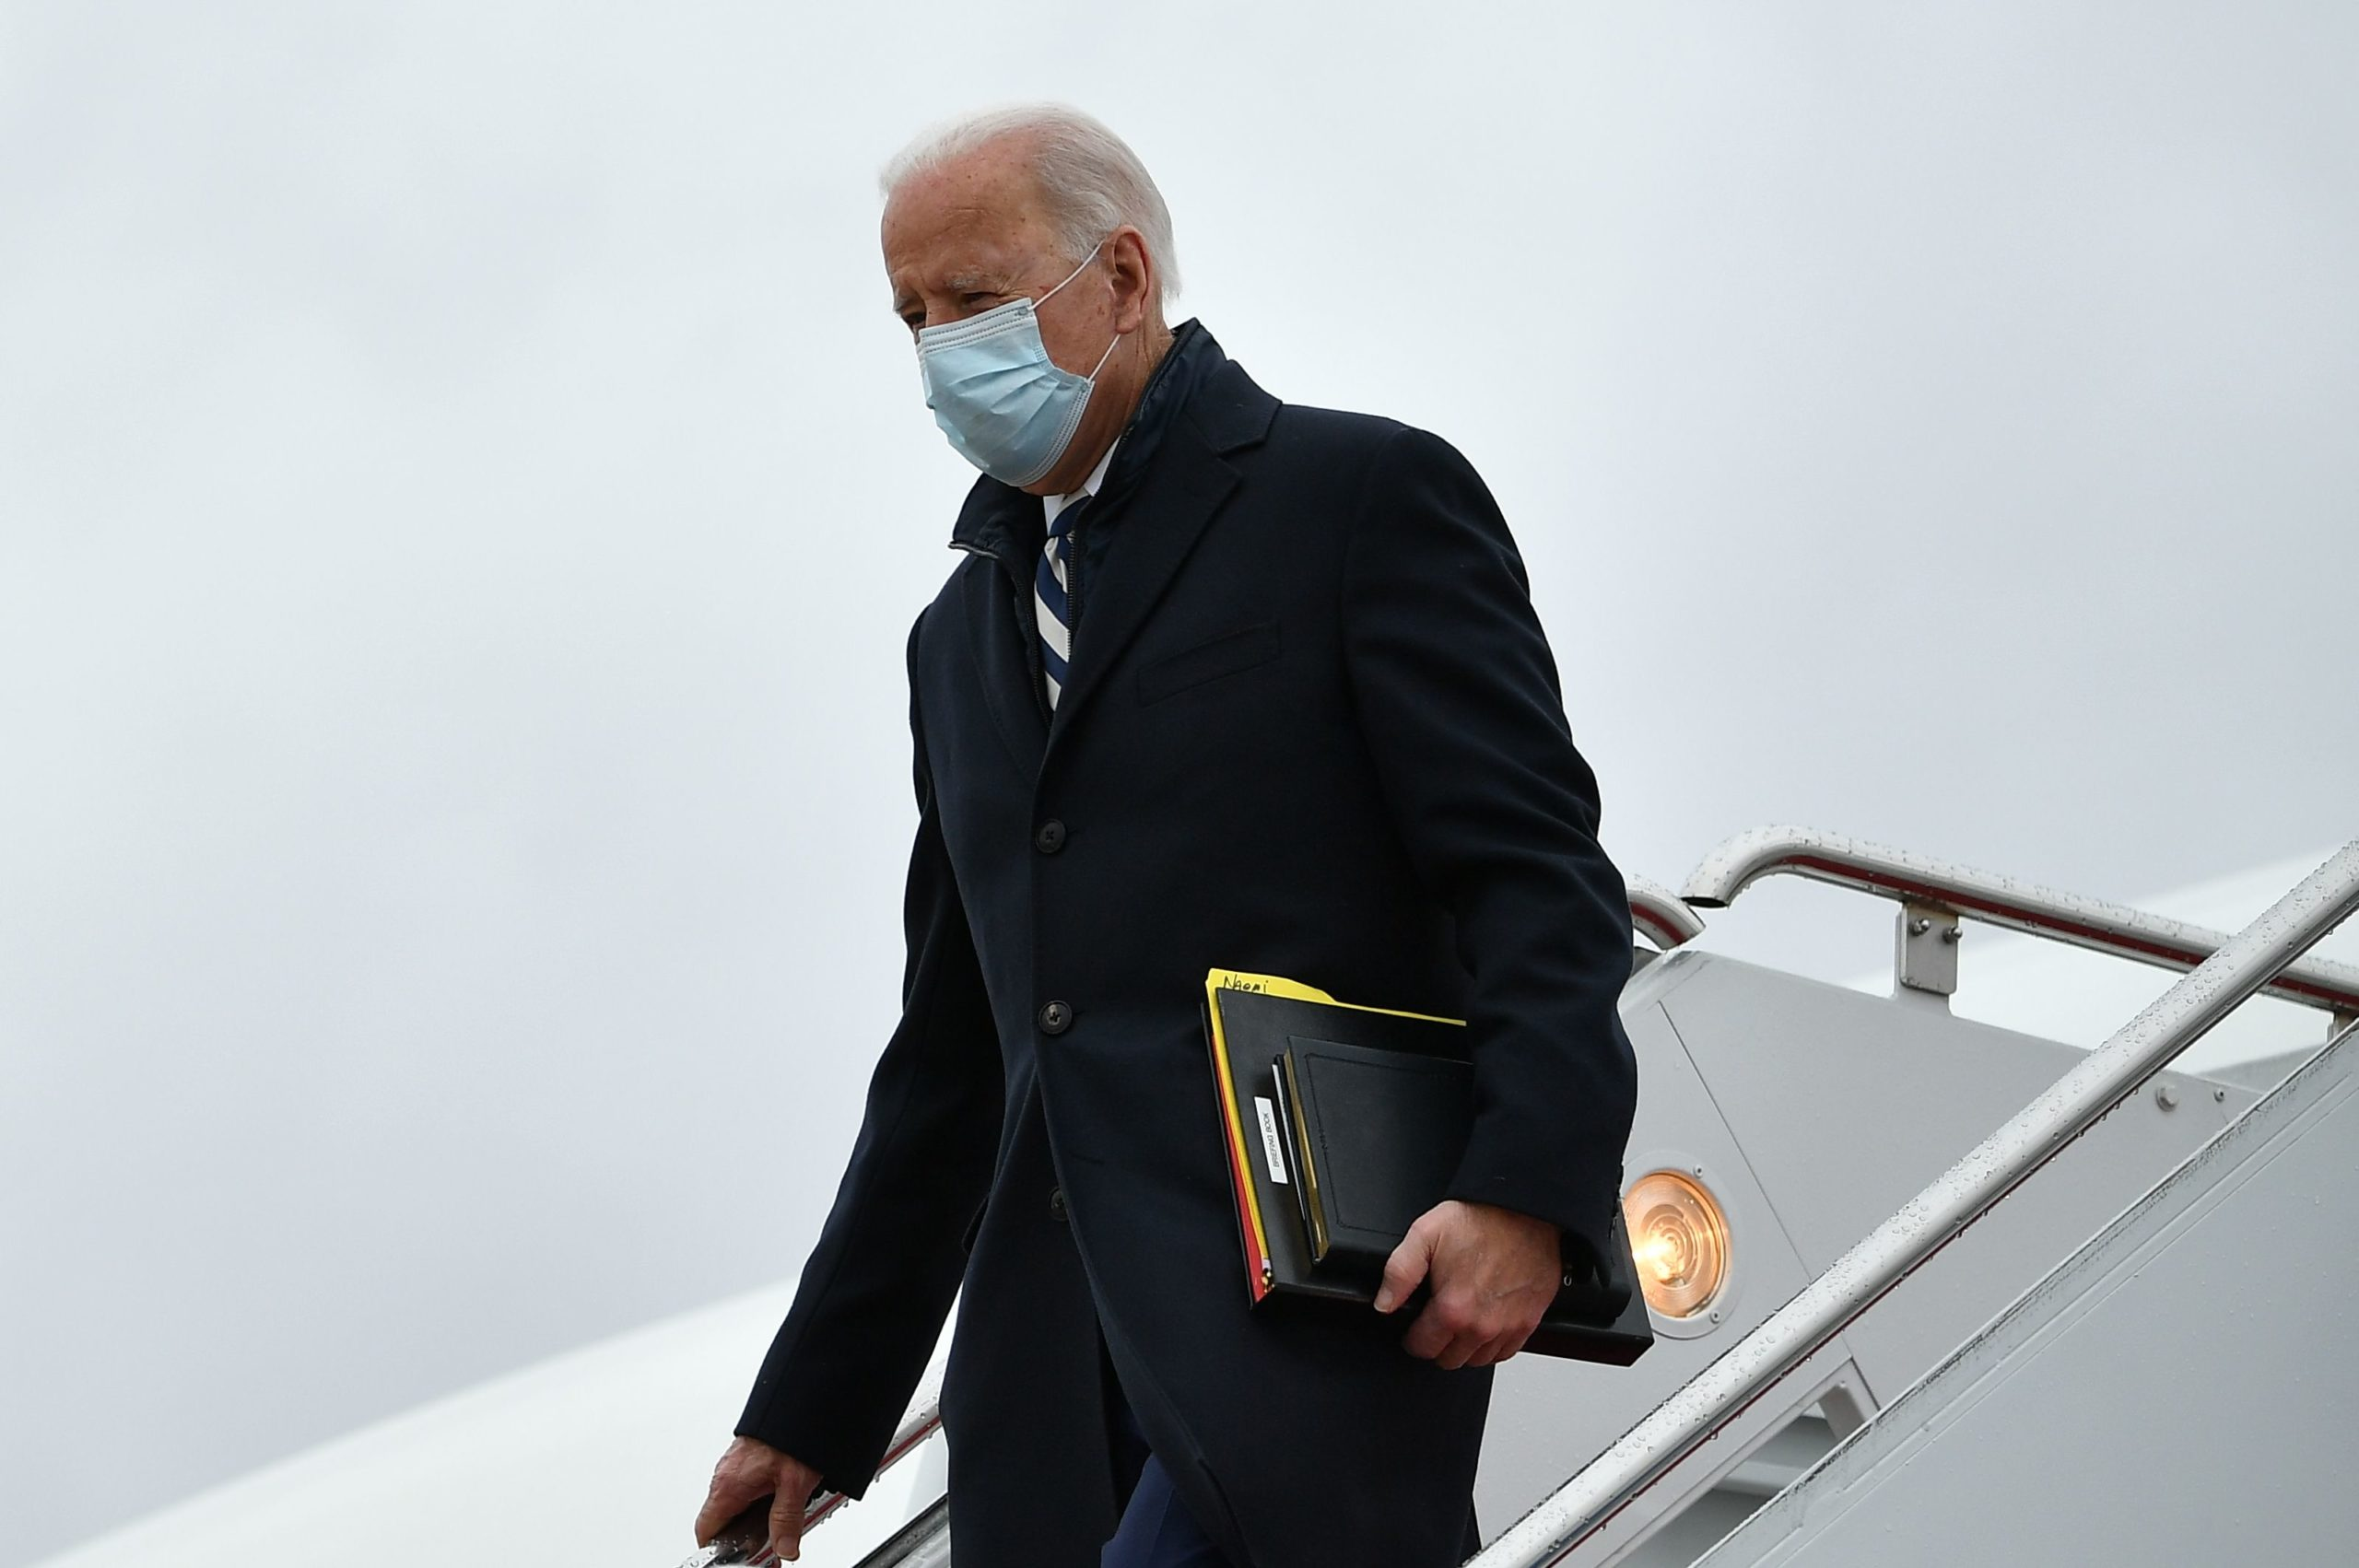 US President Joe Biden steps off Air Force One upon arrival at Andrews Air Force Base in Maryland on March 1, 2021. - Biden is returning to Washington after spending the weekend at his Wilmington home. (Photo by MANDEL NGAN/AFP via Getty Images)